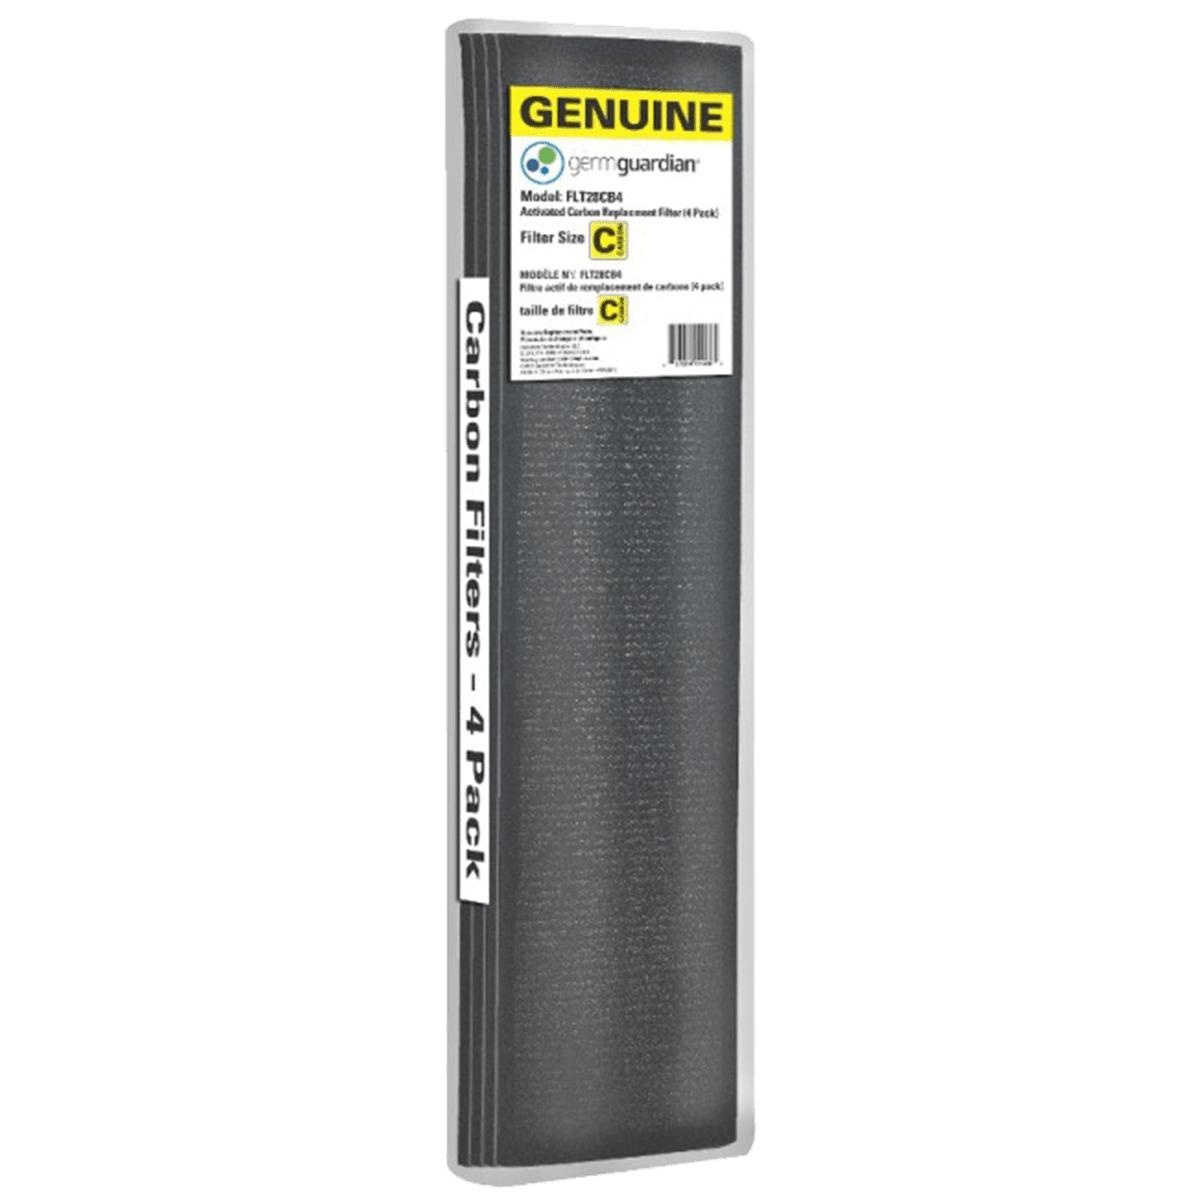 GermGuardian 4-Pack Carbon Filters for 28-Inch Air Purifiers ge7103